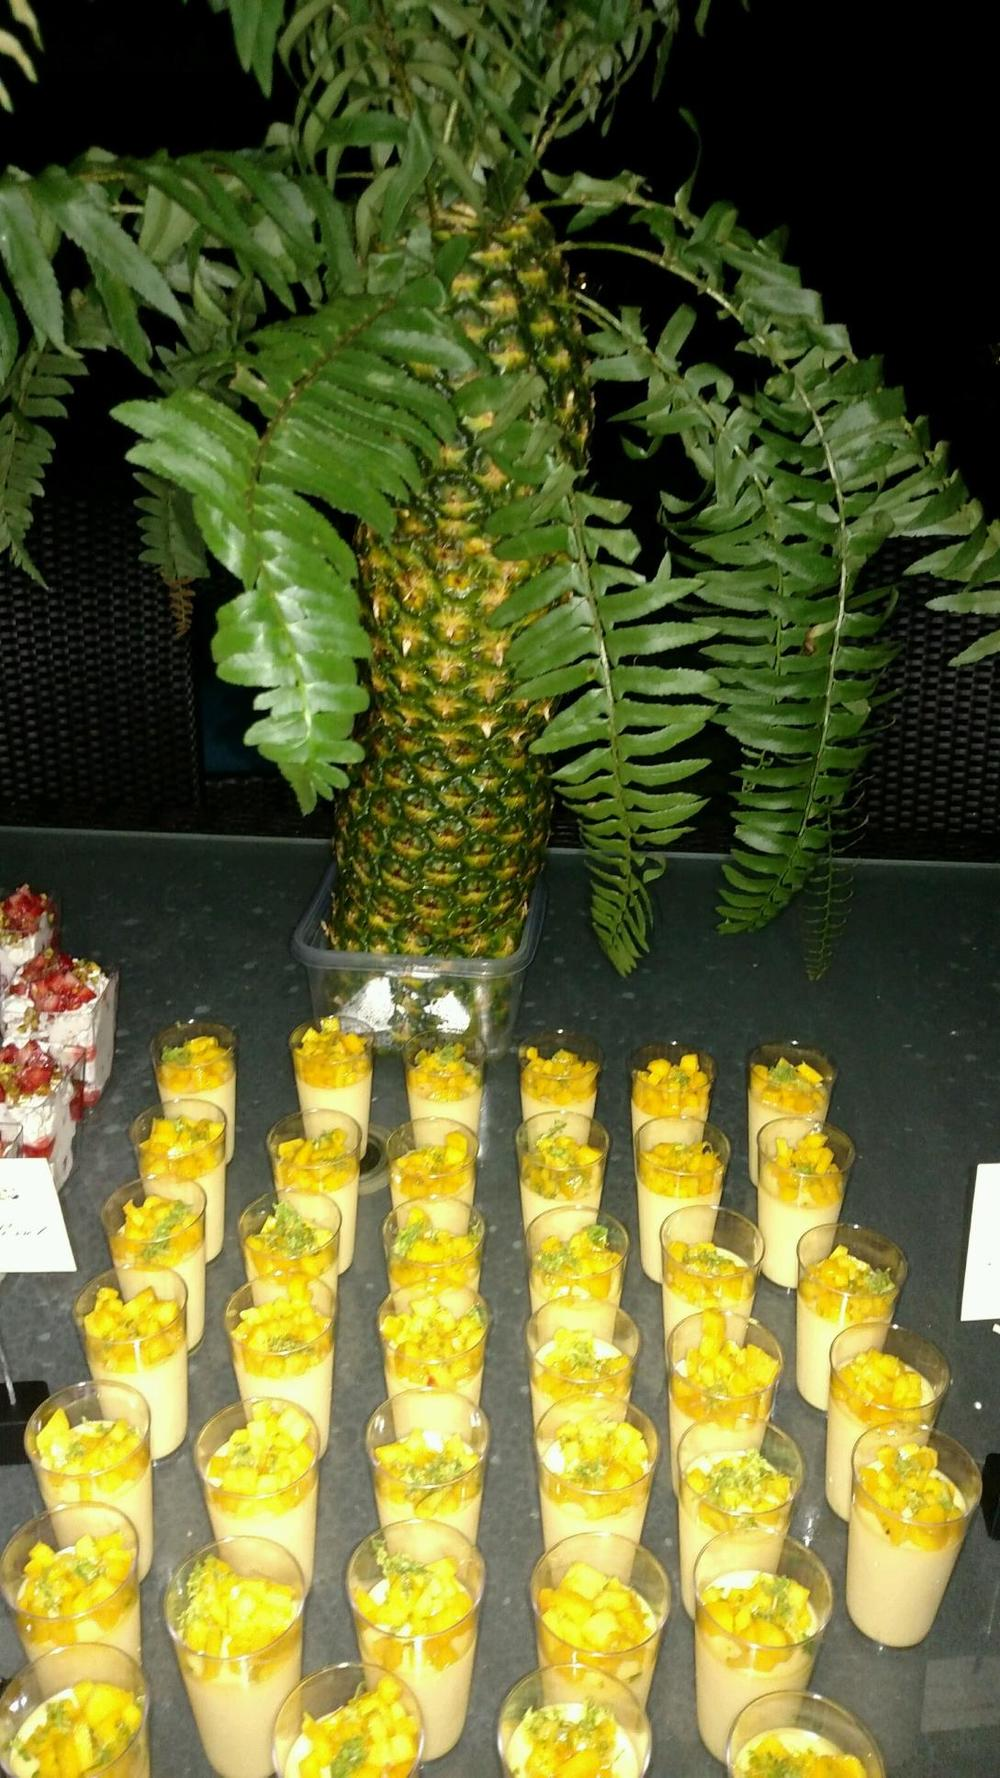 We created a Pineapple Palm tree for the dessert station to add some drama and fun!